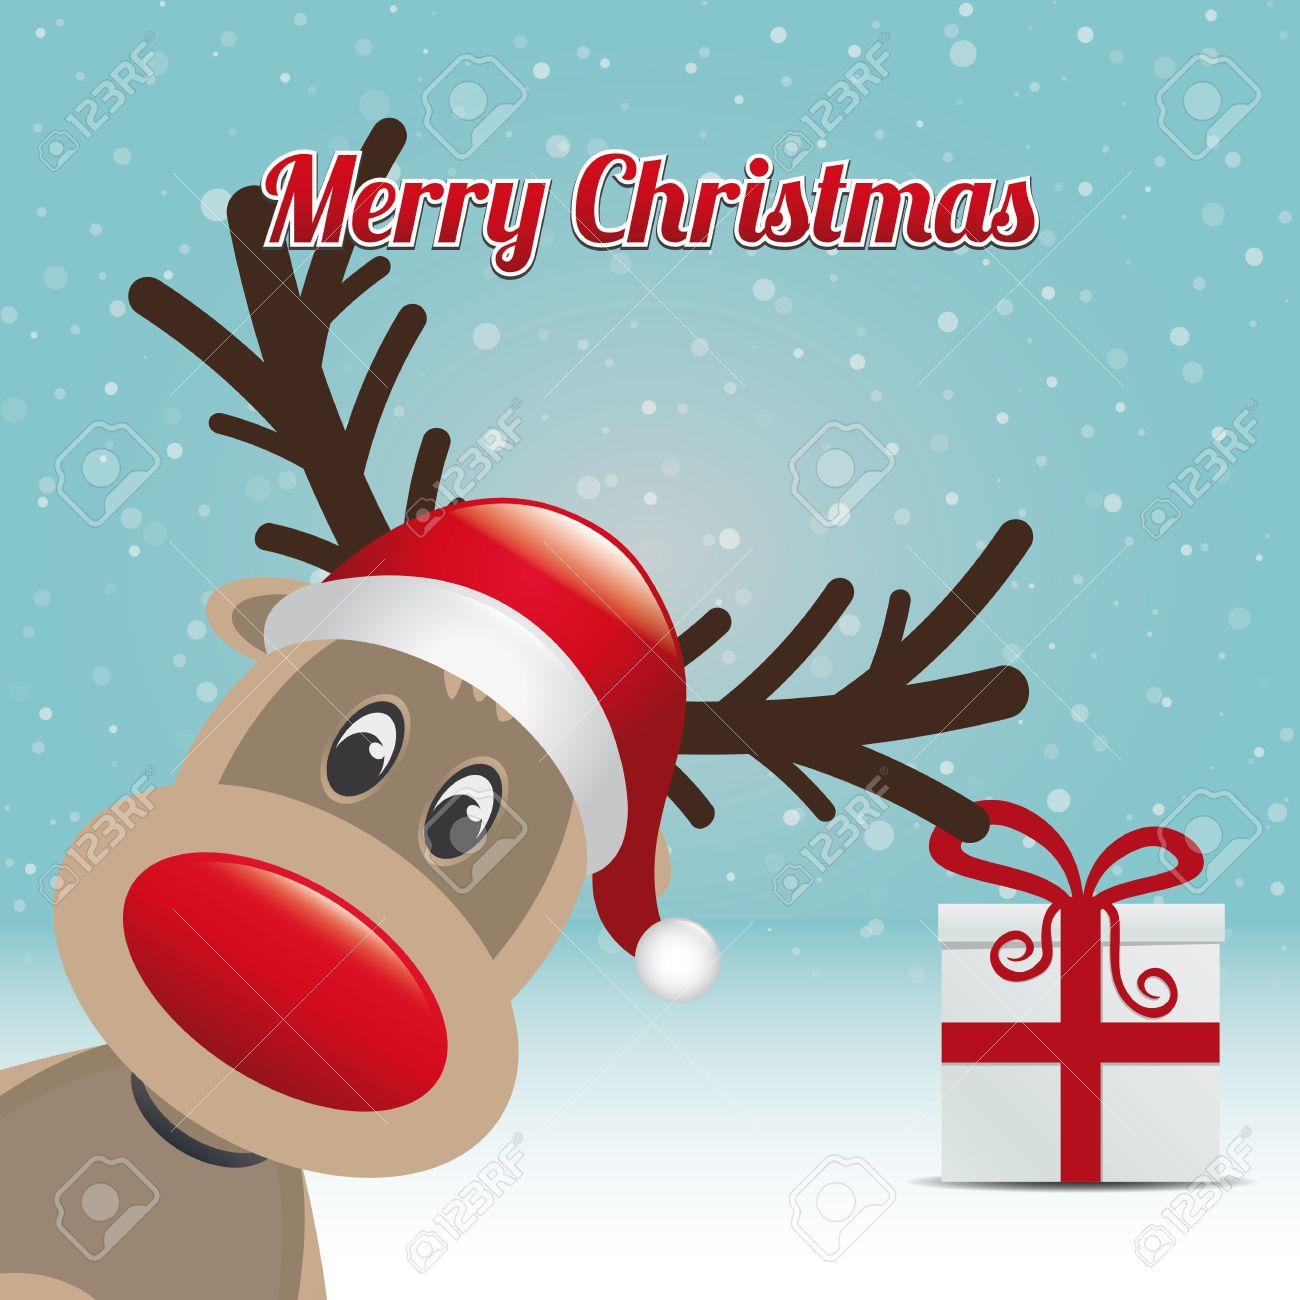 Reindeer Gift Snowy Winter Background Merry Christmas Royalty Free ...